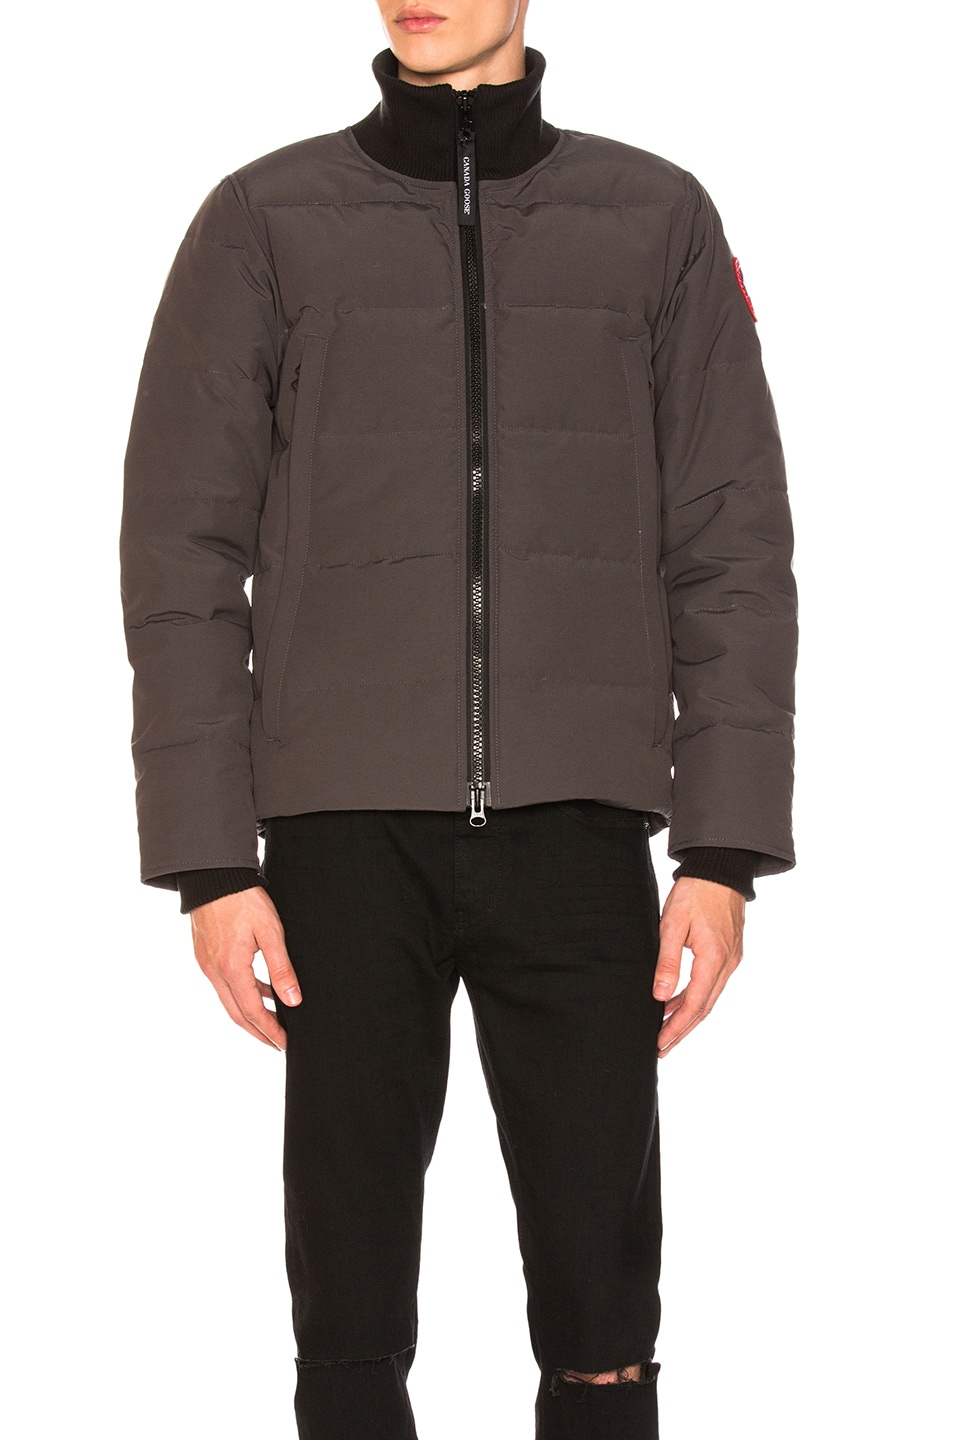 4b767b8e8e8 Image 1 of Canada Goose Woolford Jacket in Graphite